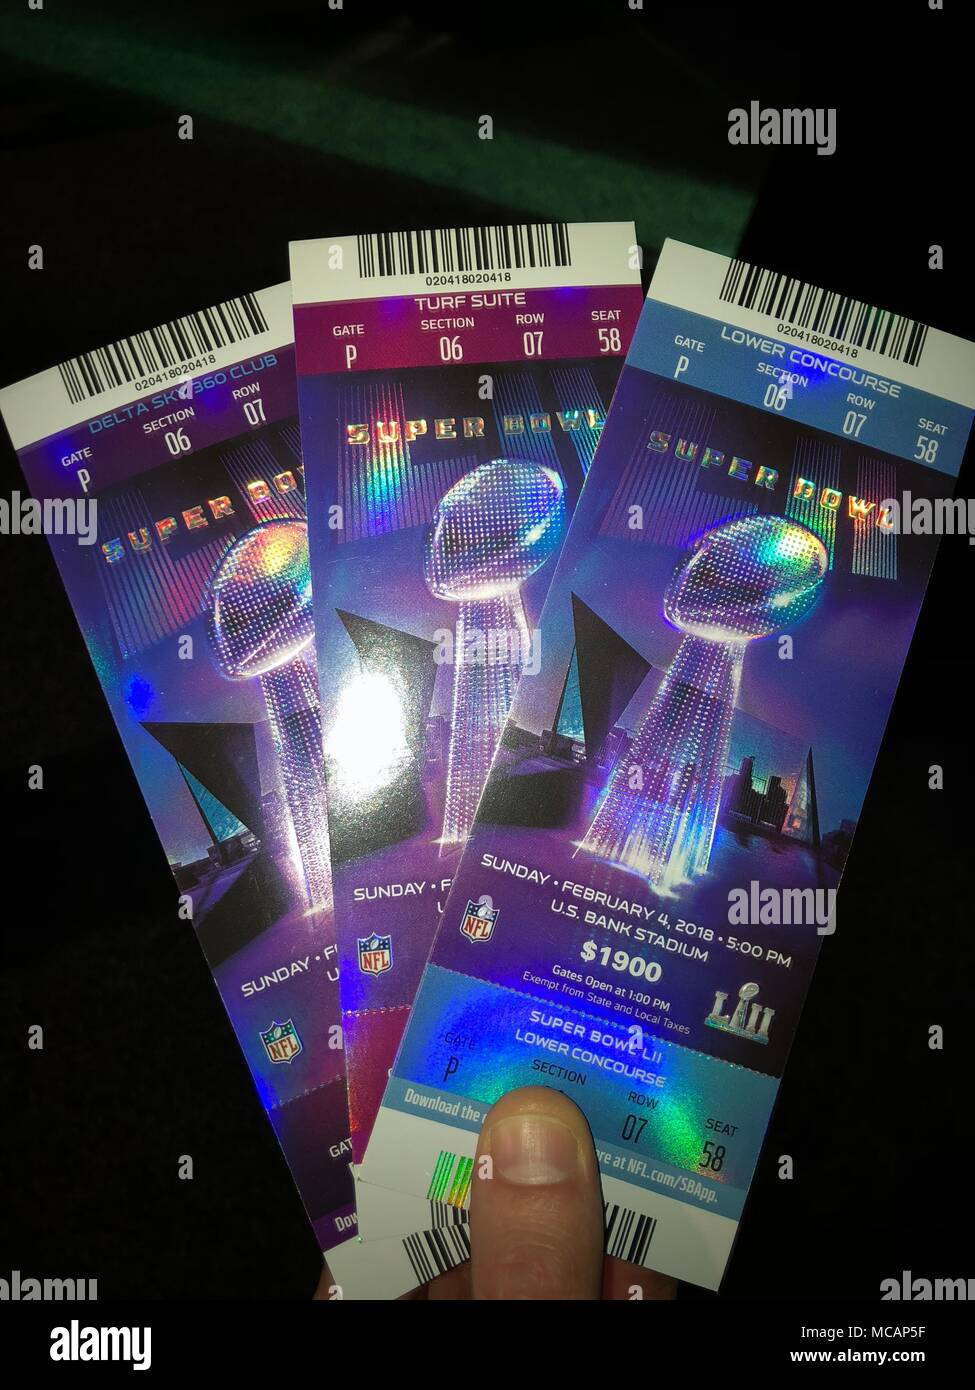 An example of legitimate tickets to Super Bowl 52. The National Intellectual Property Rights Center and the NFL have cautioned fans to avoid purchasing counterfeit tickets. - Stock Image